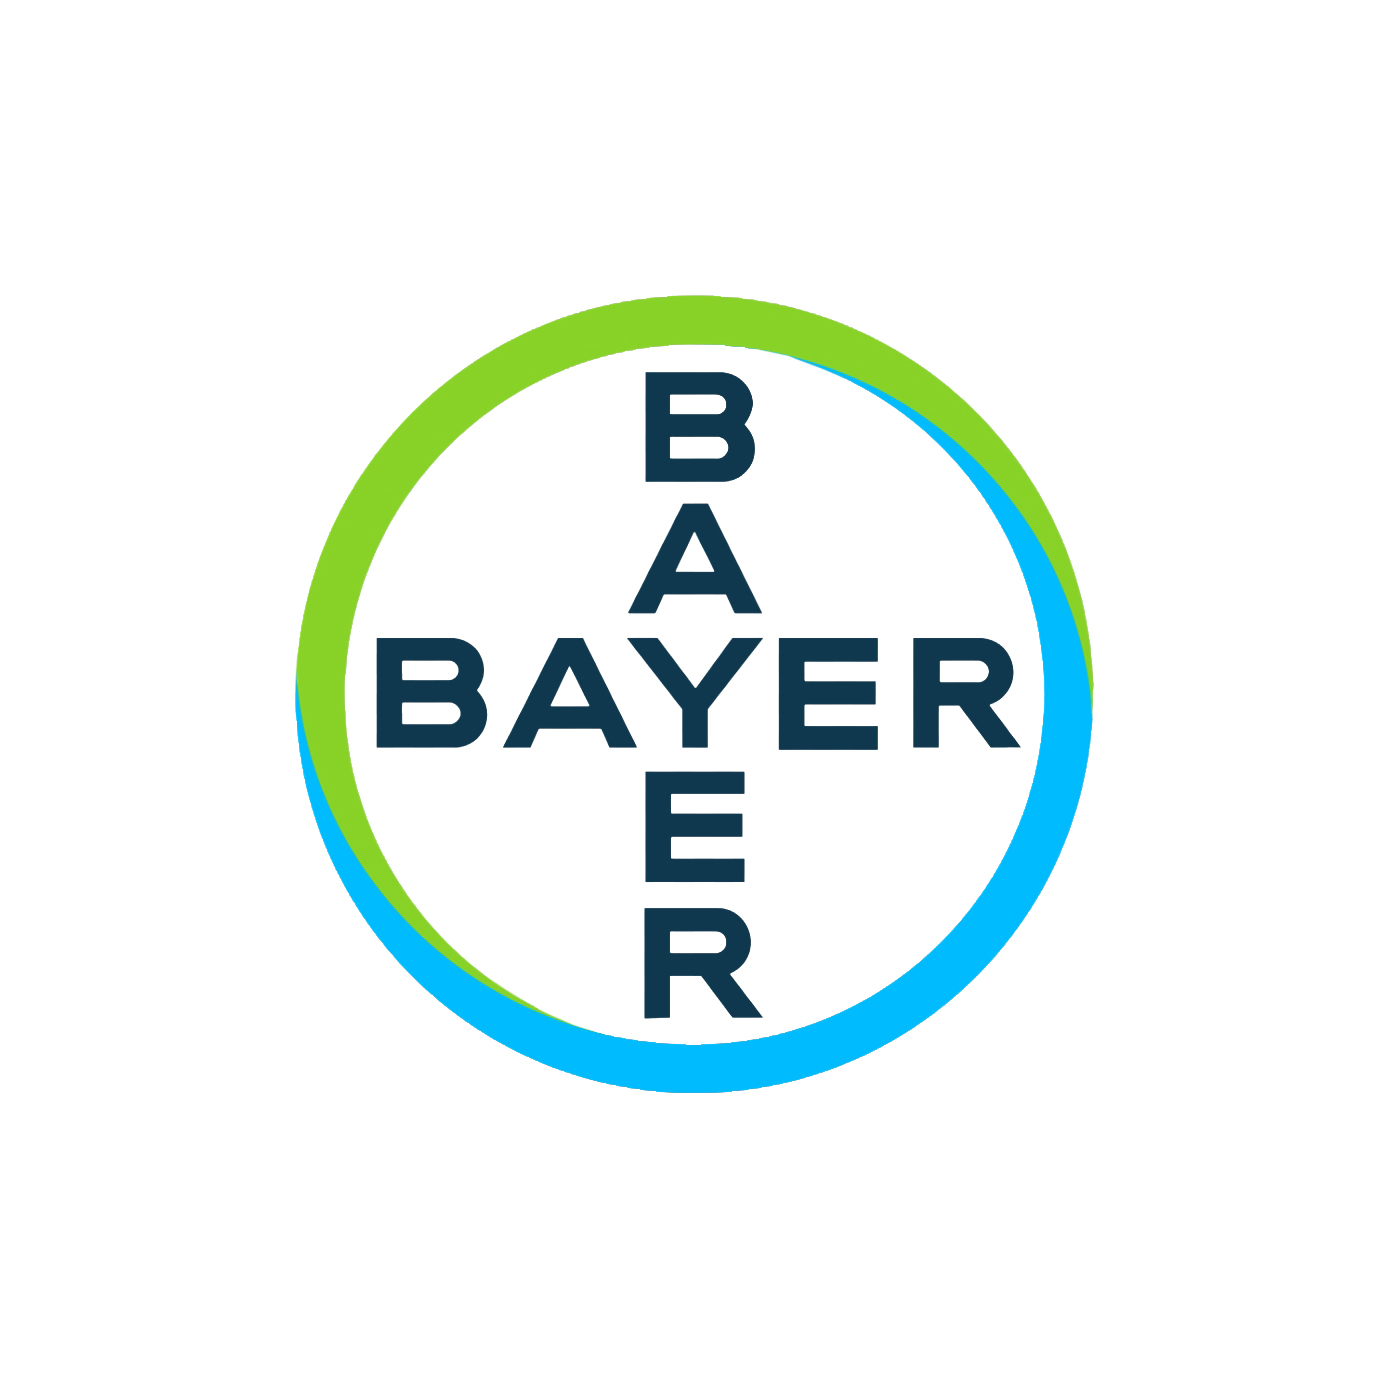 327-3277480_bayer-logo-hd-png-download